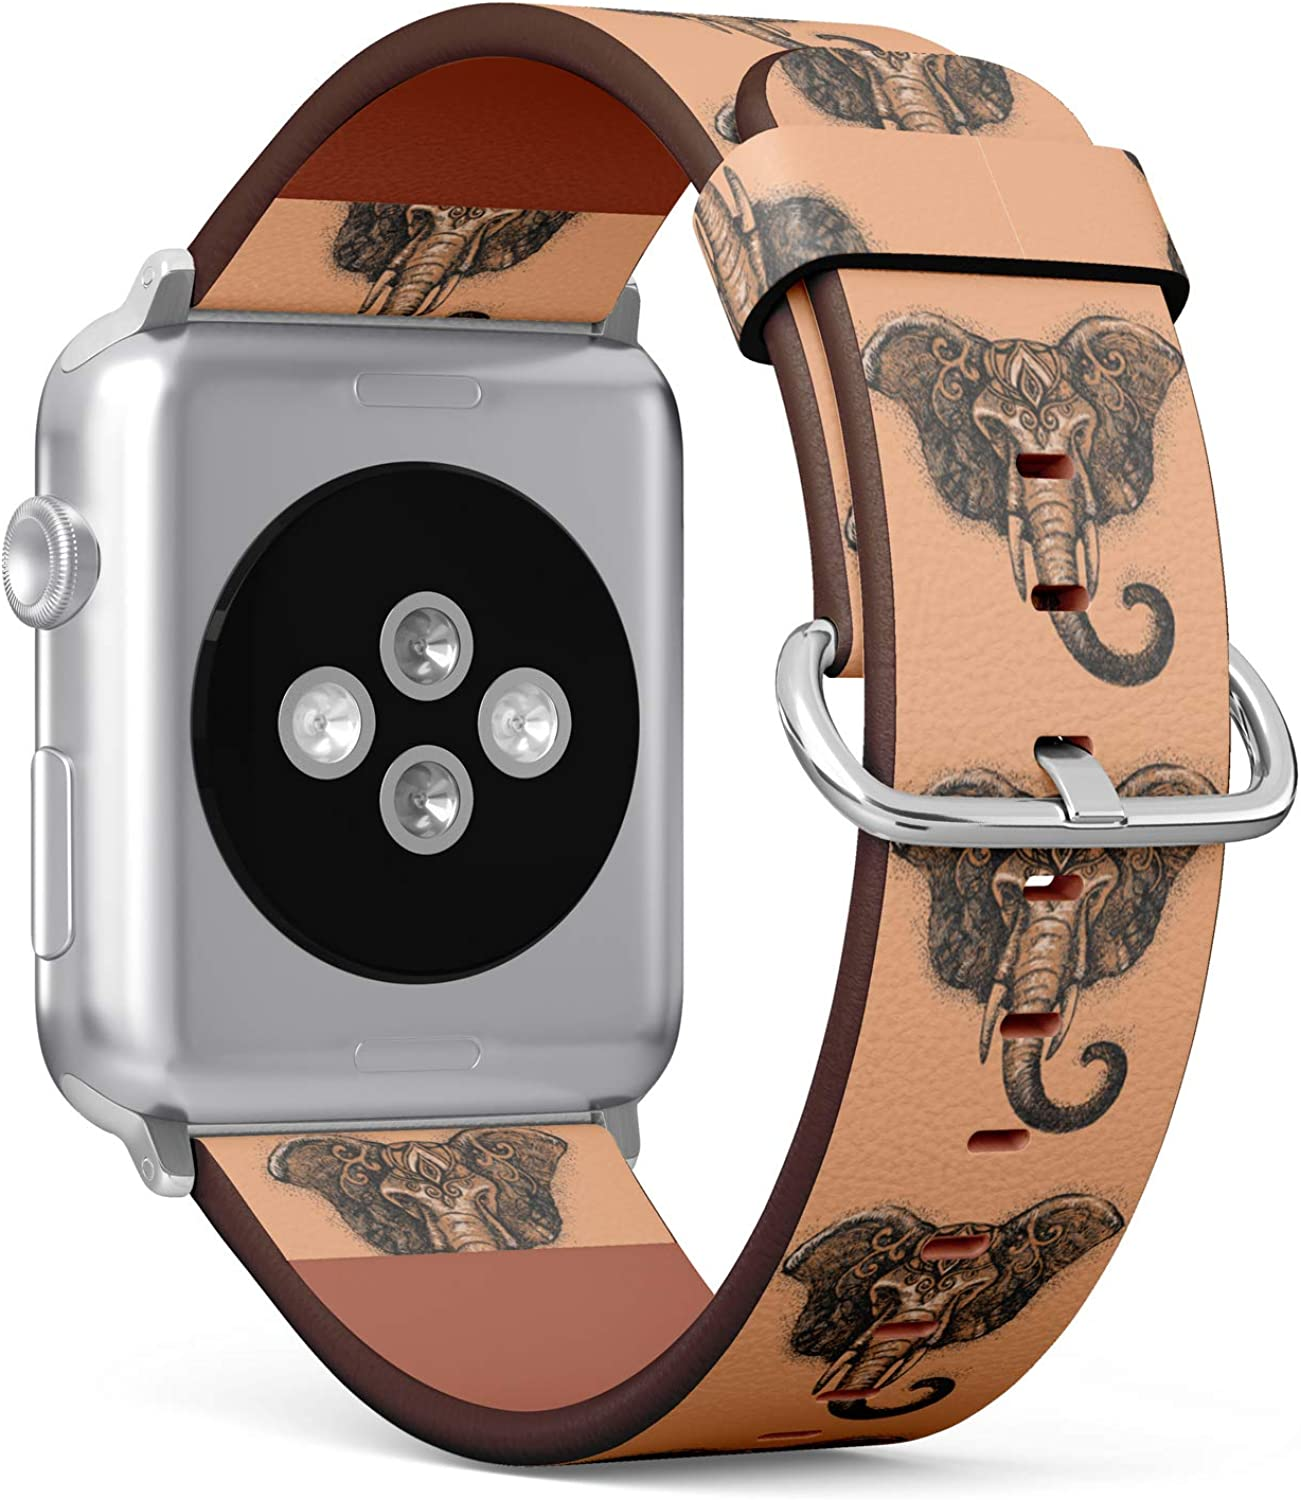 (Indian Elephant) Patterned Leather Wristband Strap for Apple Watch Series 4/3/2/1 gen,Replacement for iWatch 38mm / 40mm Bands